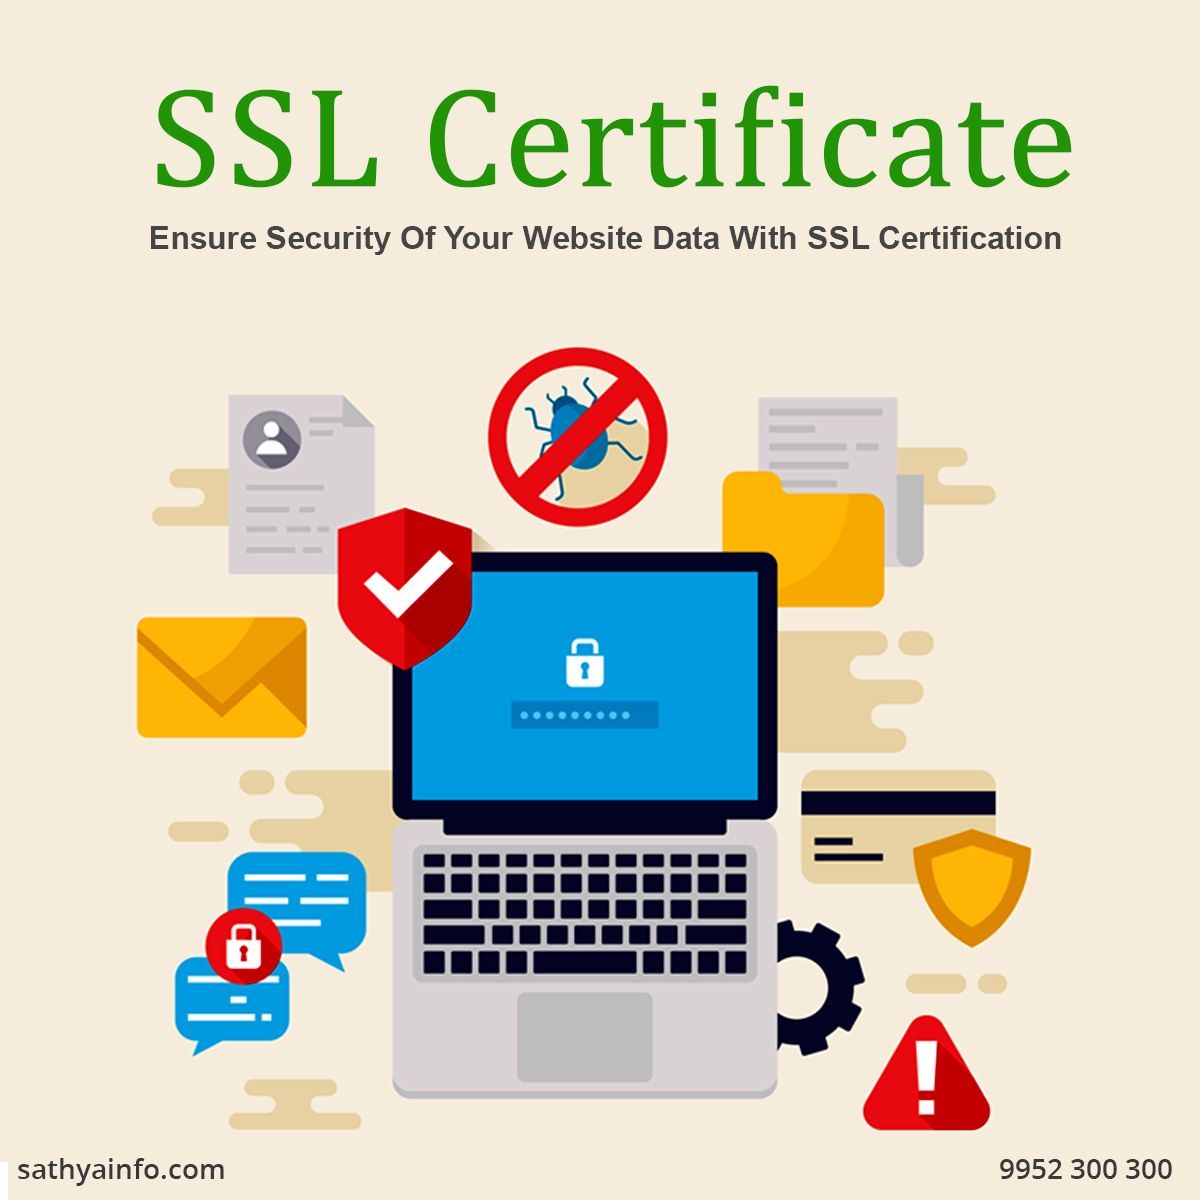 Pin By Sathyainfo On SSL Certificate